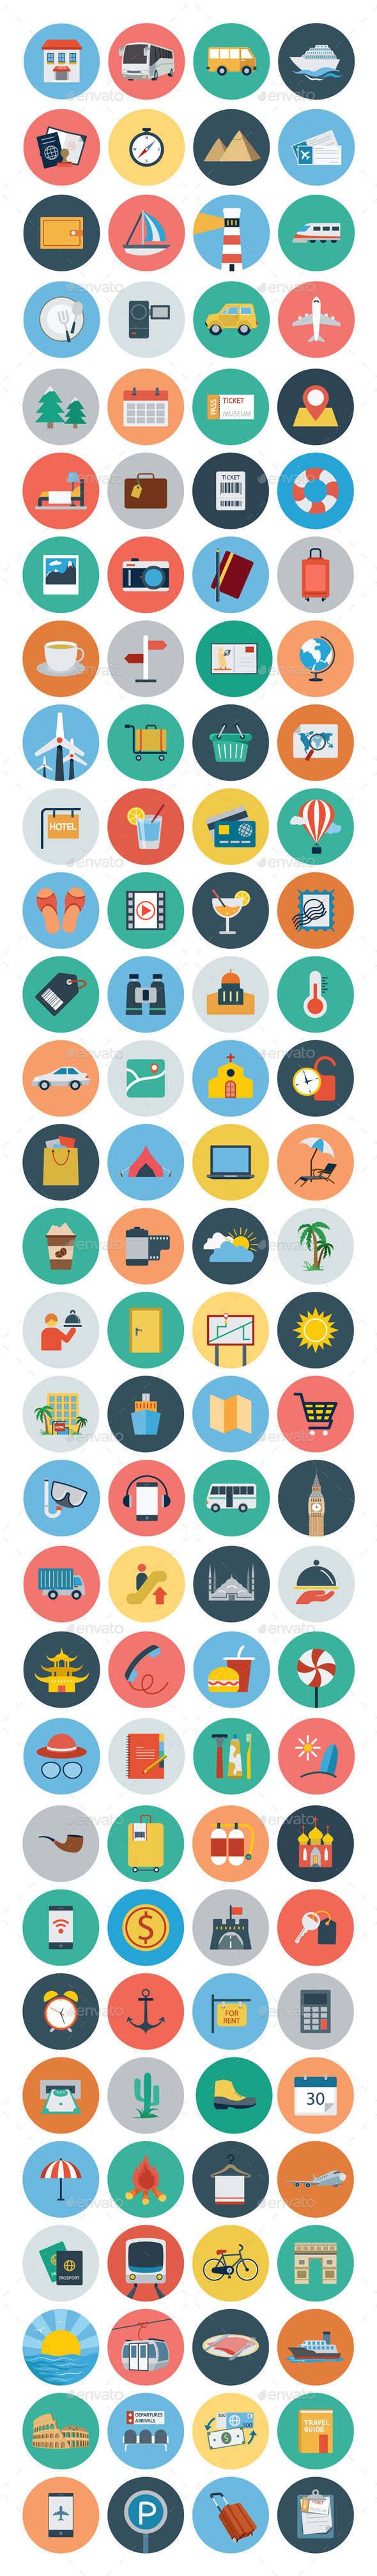 120 Travel Flat Icons - Icons